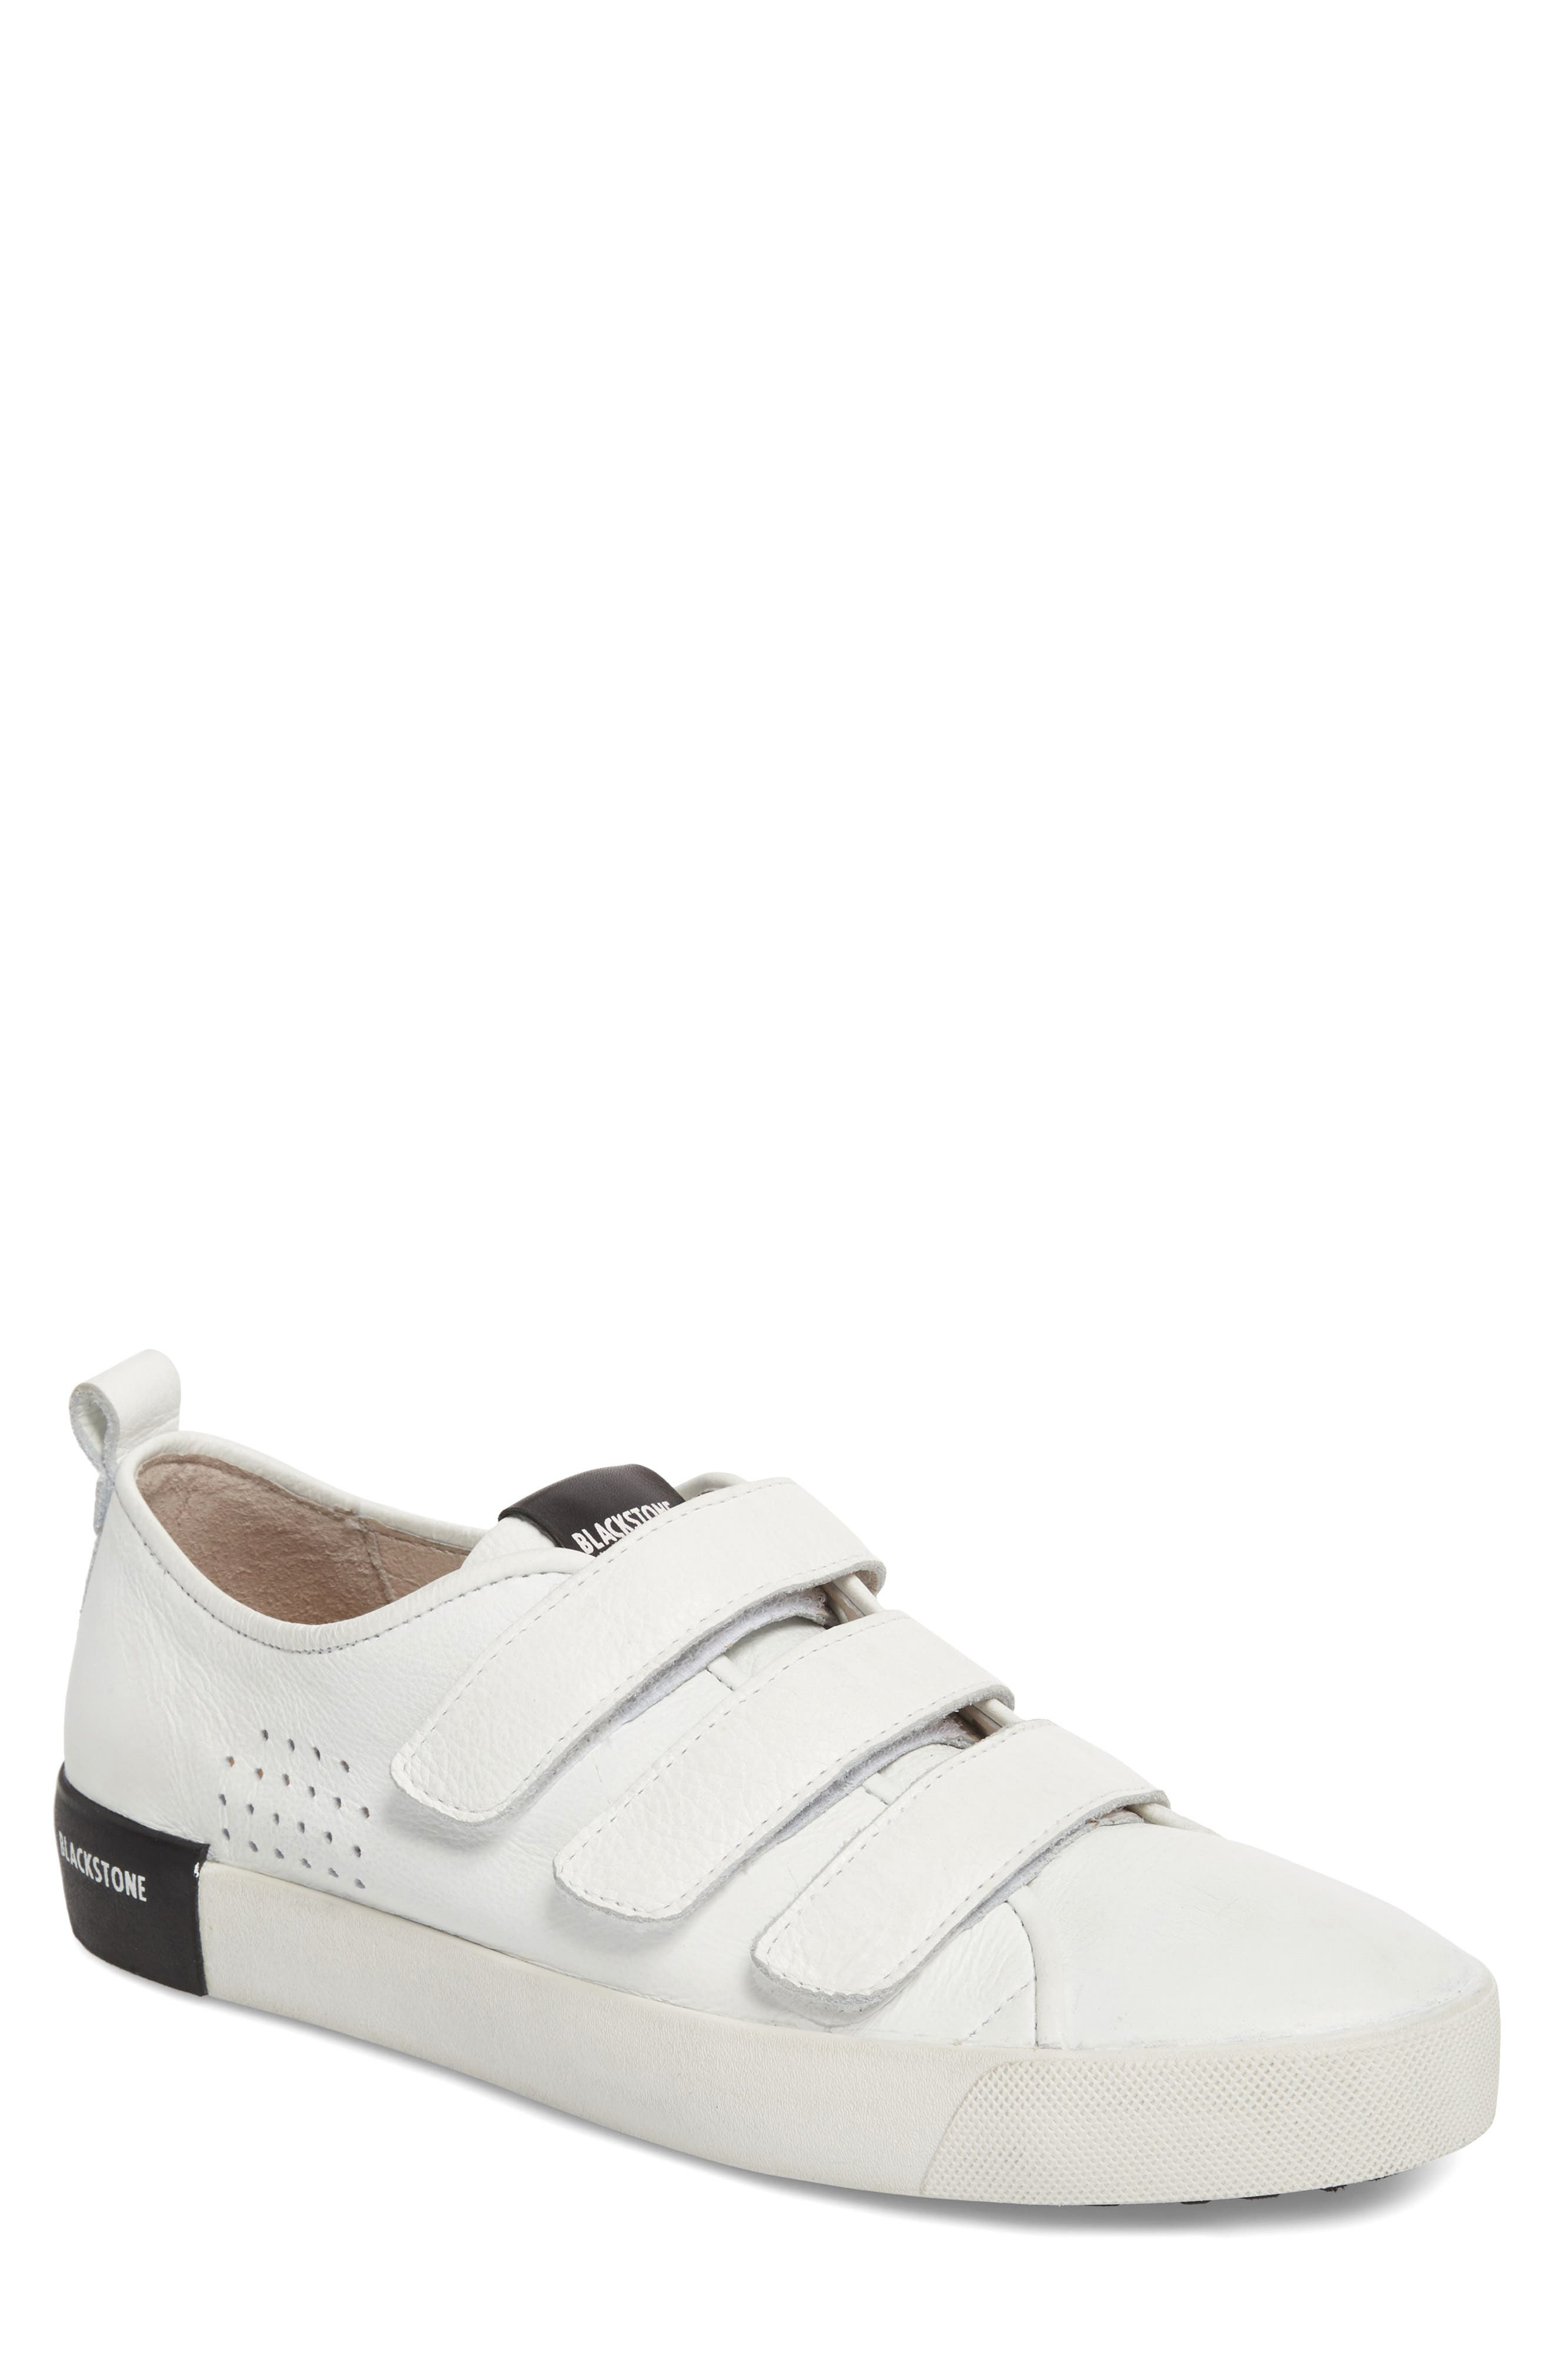 PM41 Low Top Sneaker,                         Main,                         color, WHITE LEATHER